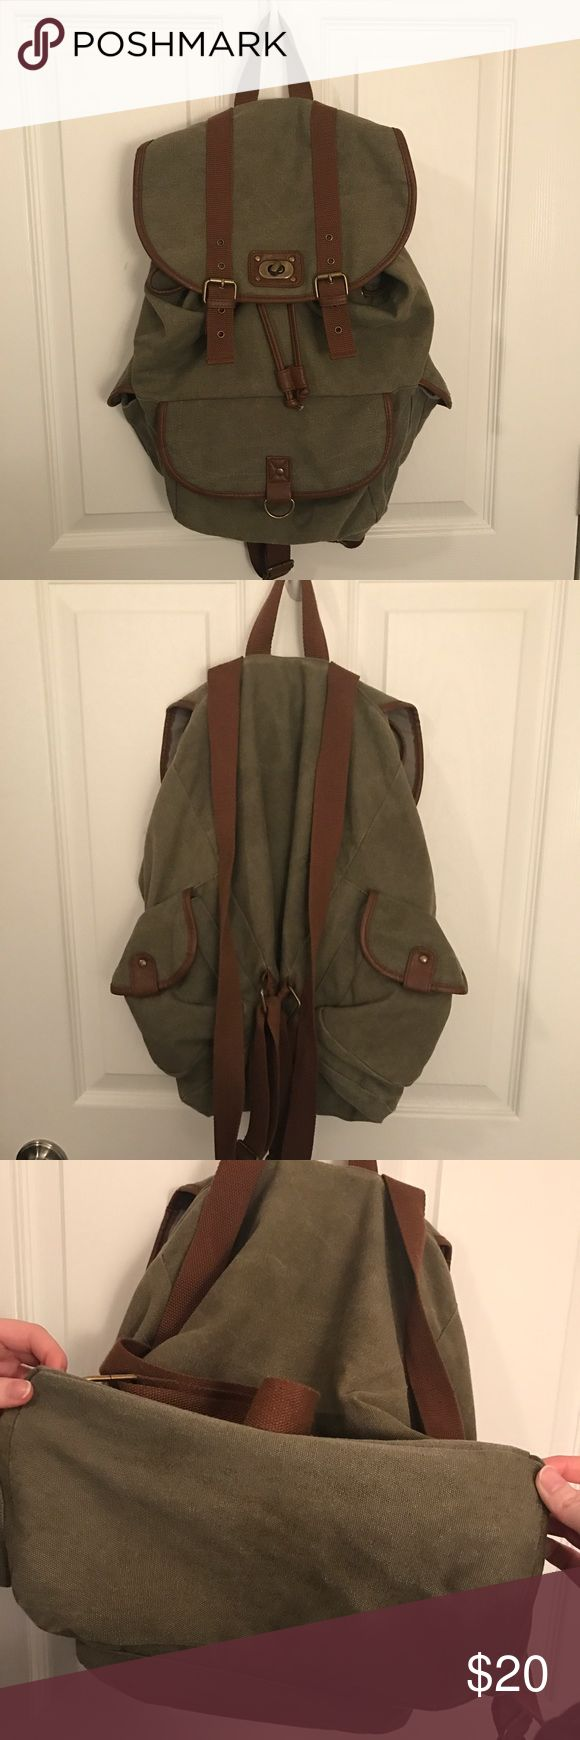 Mossimo Army Green Backpack Mossimo Green Backpack in great condition! Barely used and has some good life left in it :) Offers are welcomed! Mossimo Supply Co Bags Backpacks